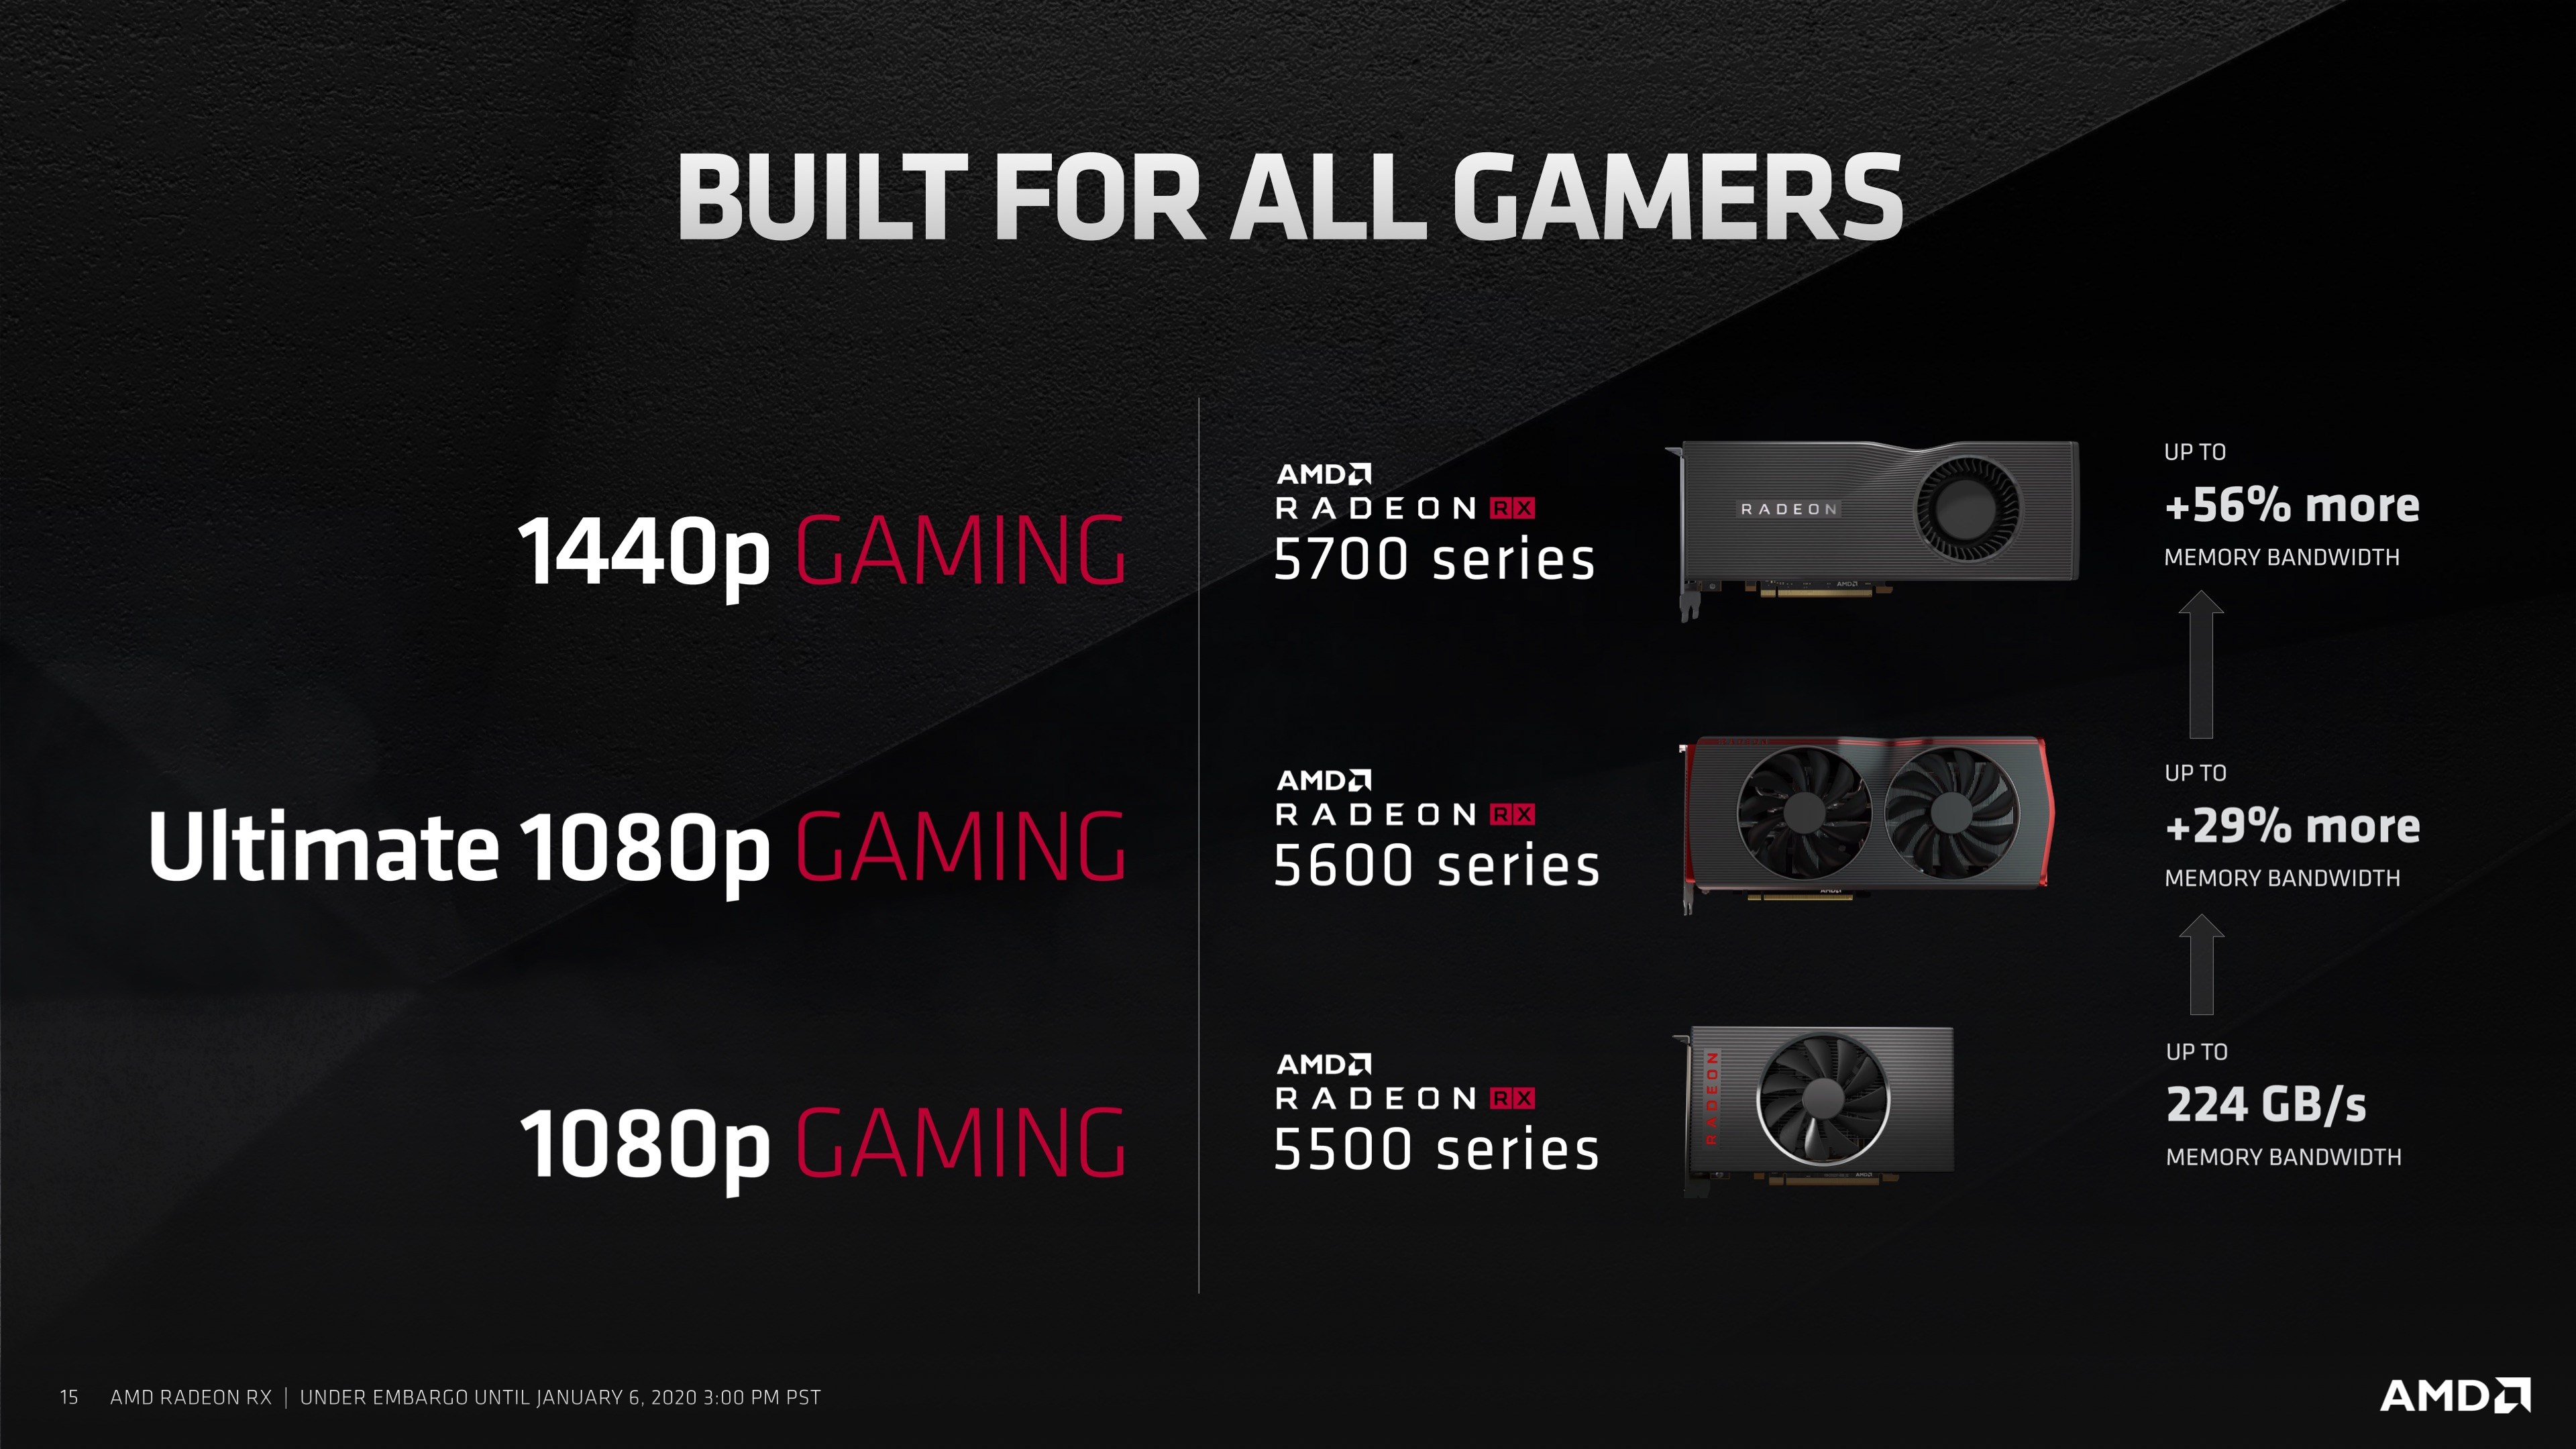 Amd Announces Radeon Rx 5600 Series A Lighter Navi To Rule 1080p Gaming